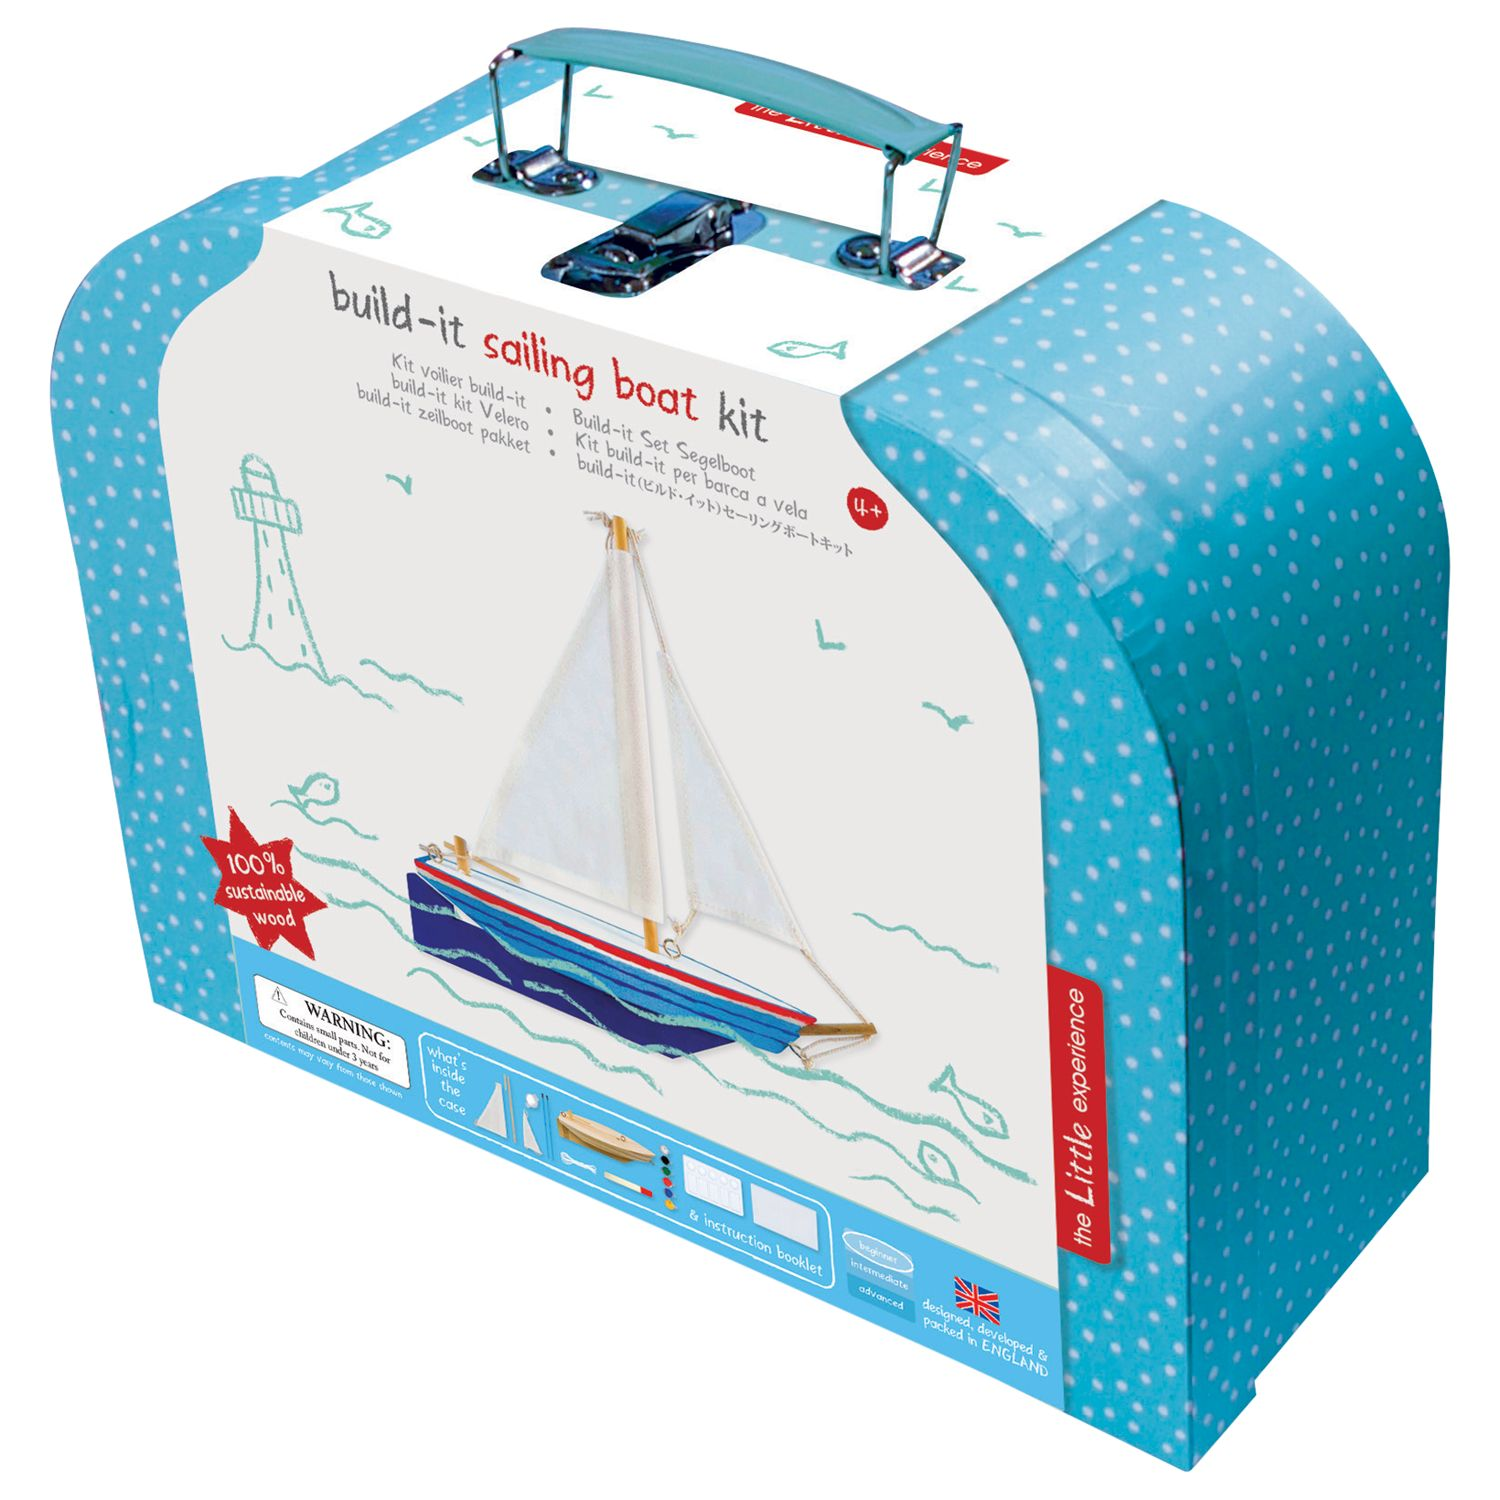 The Little Experience Build-it Sailing Boat Kit